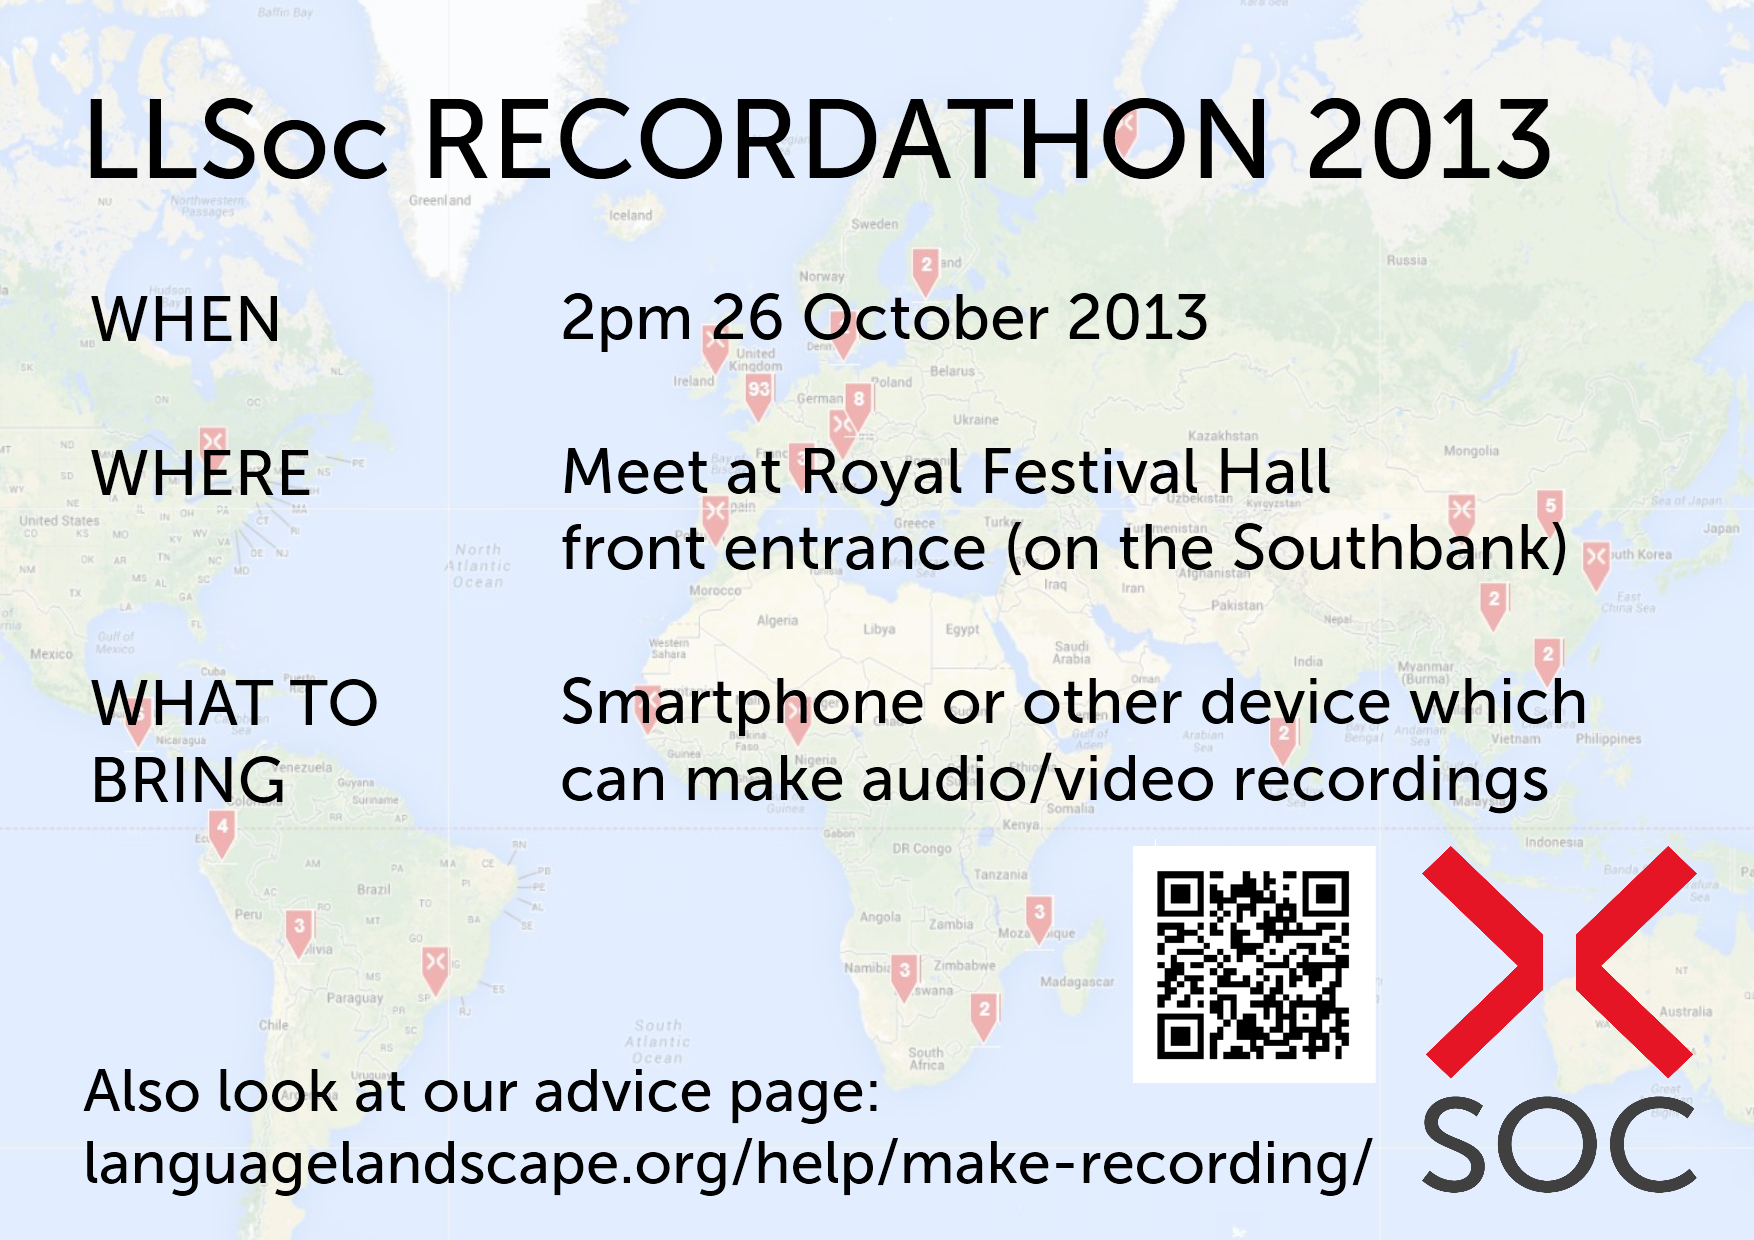 ll-soc-recordathon-2013